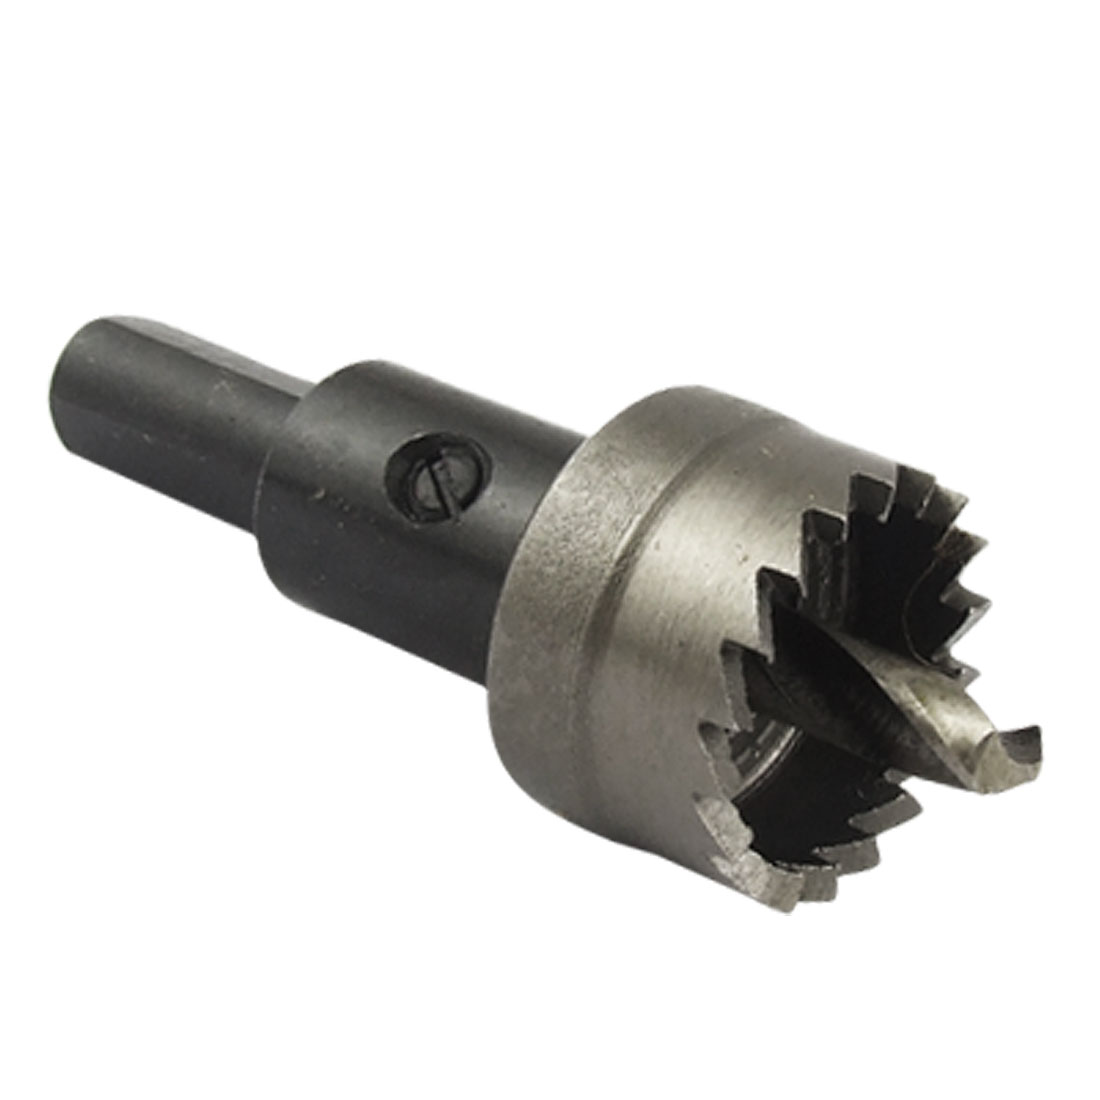 Twist Drill Bit 24mm Cutting Dia Metal Working Hole Saw